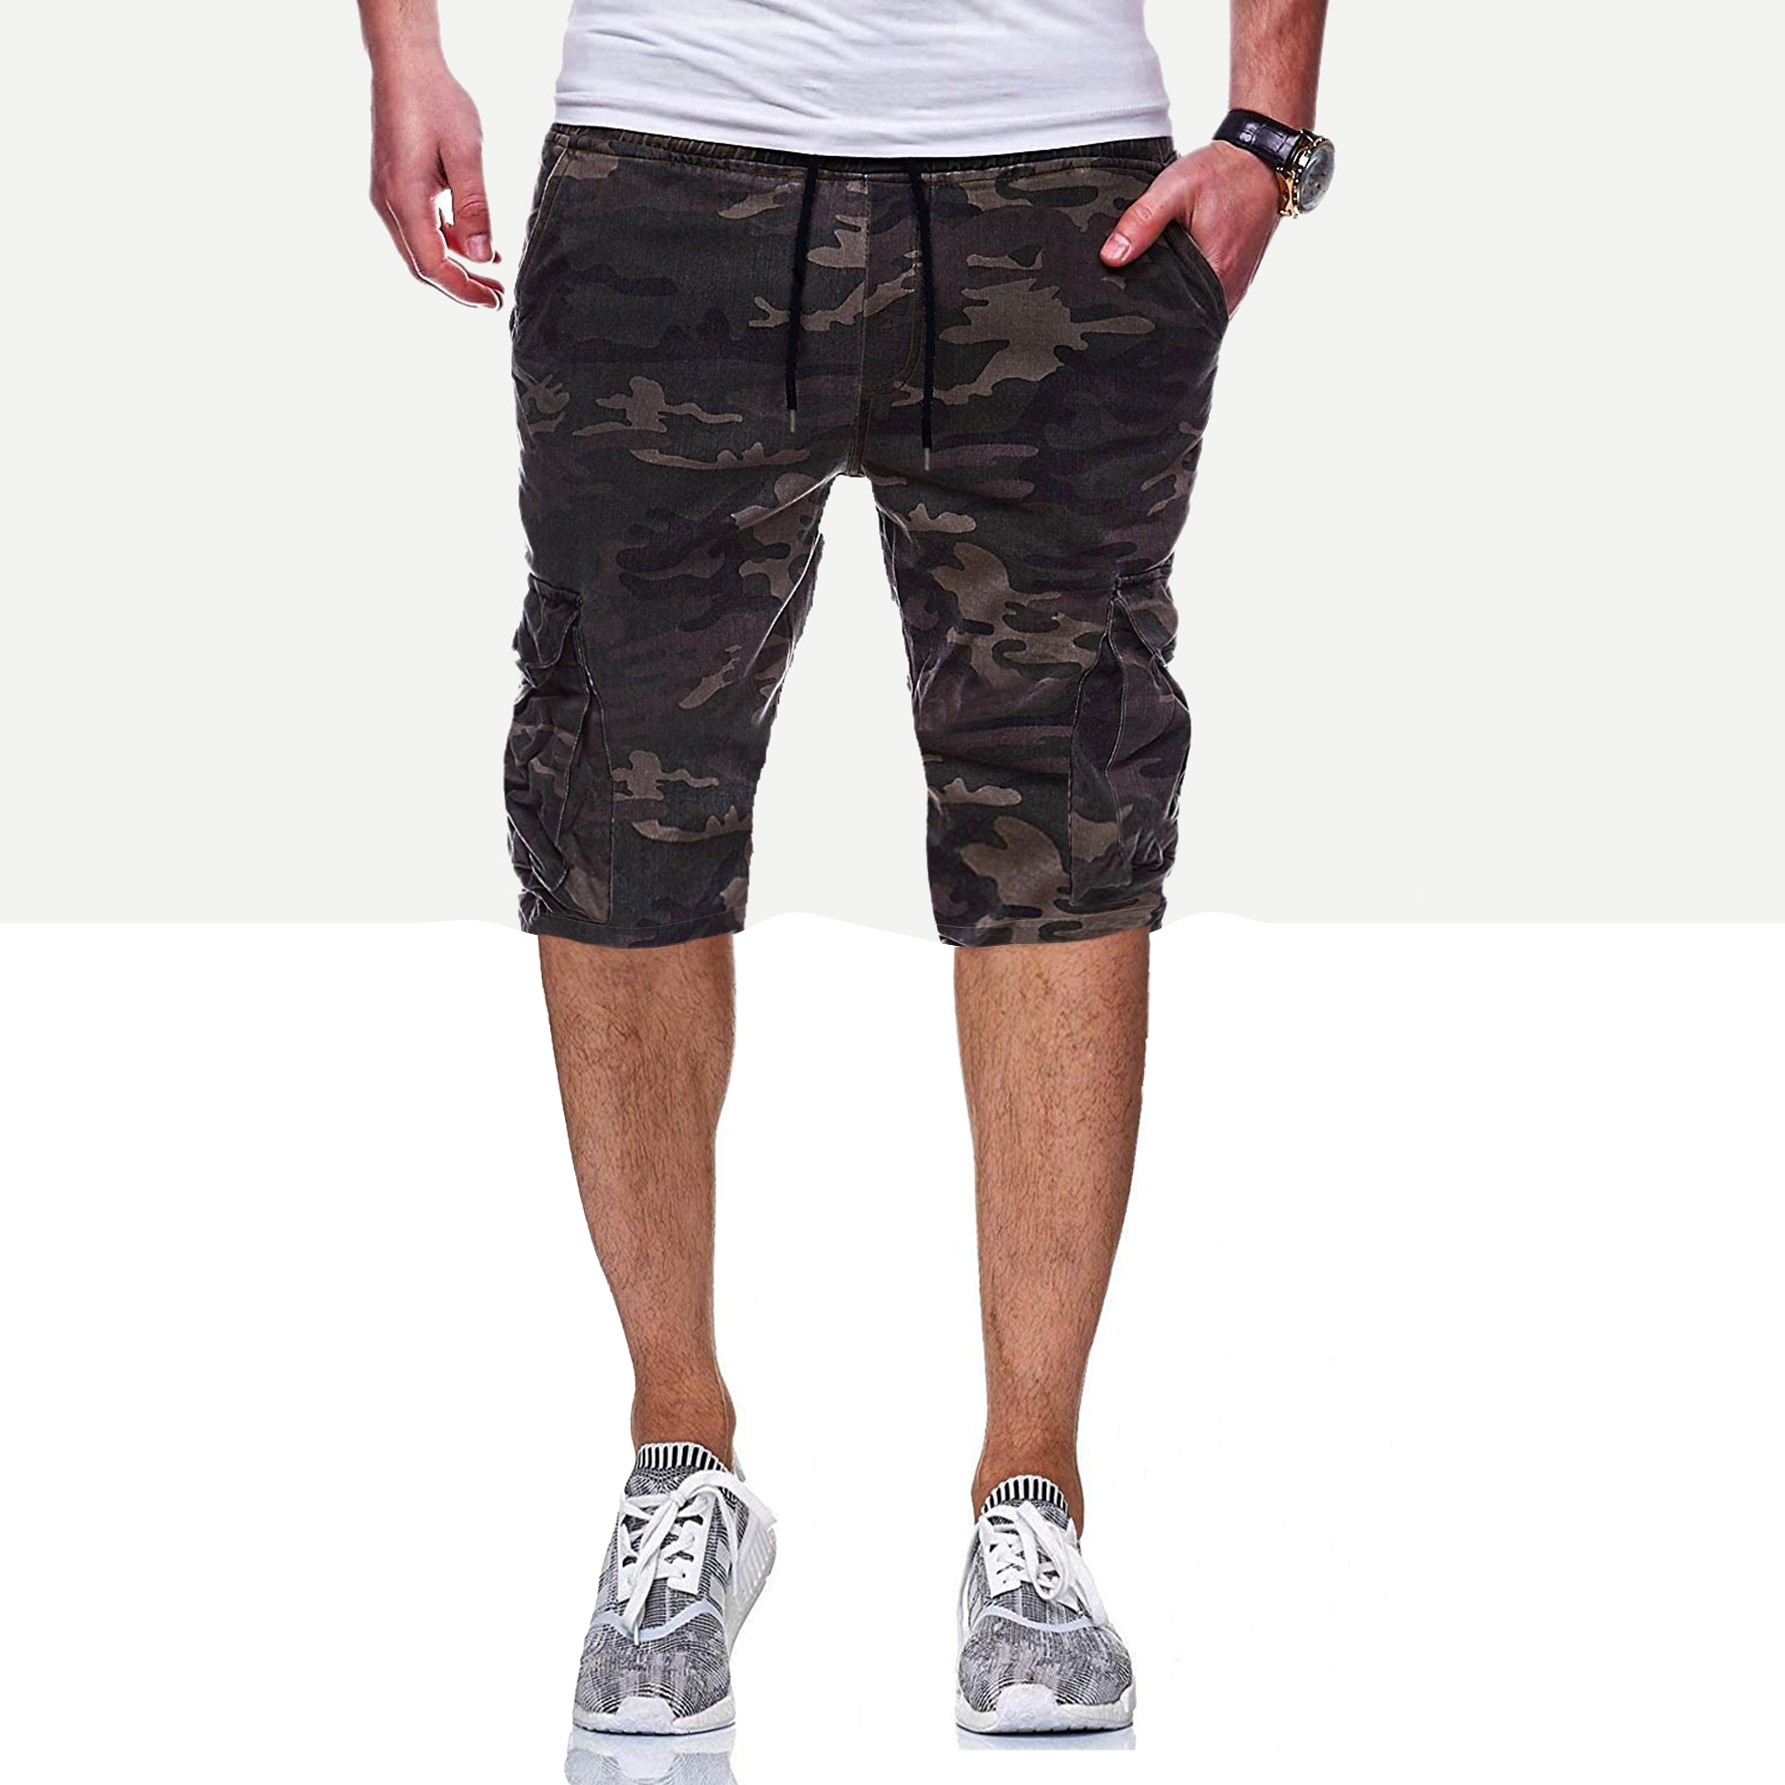 Foreign Trade Summer New Style Men's Large Size Camouflage Printed Cropped Trousers Men With Drawstring Belt Casual Capri Pants